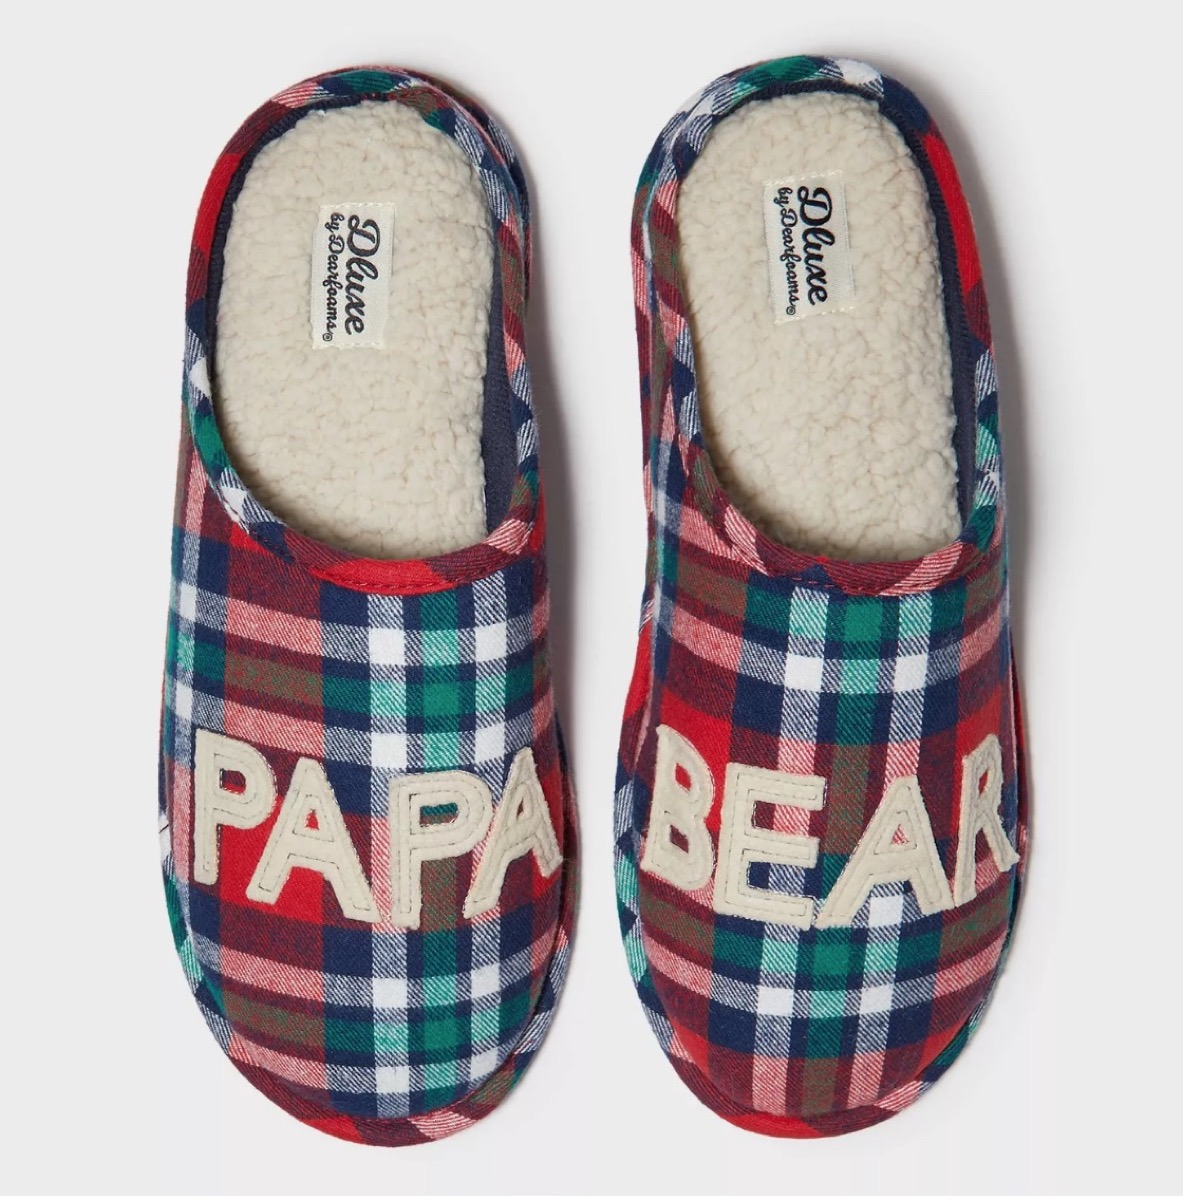 red and green plaid slippers with papa bear on the toes